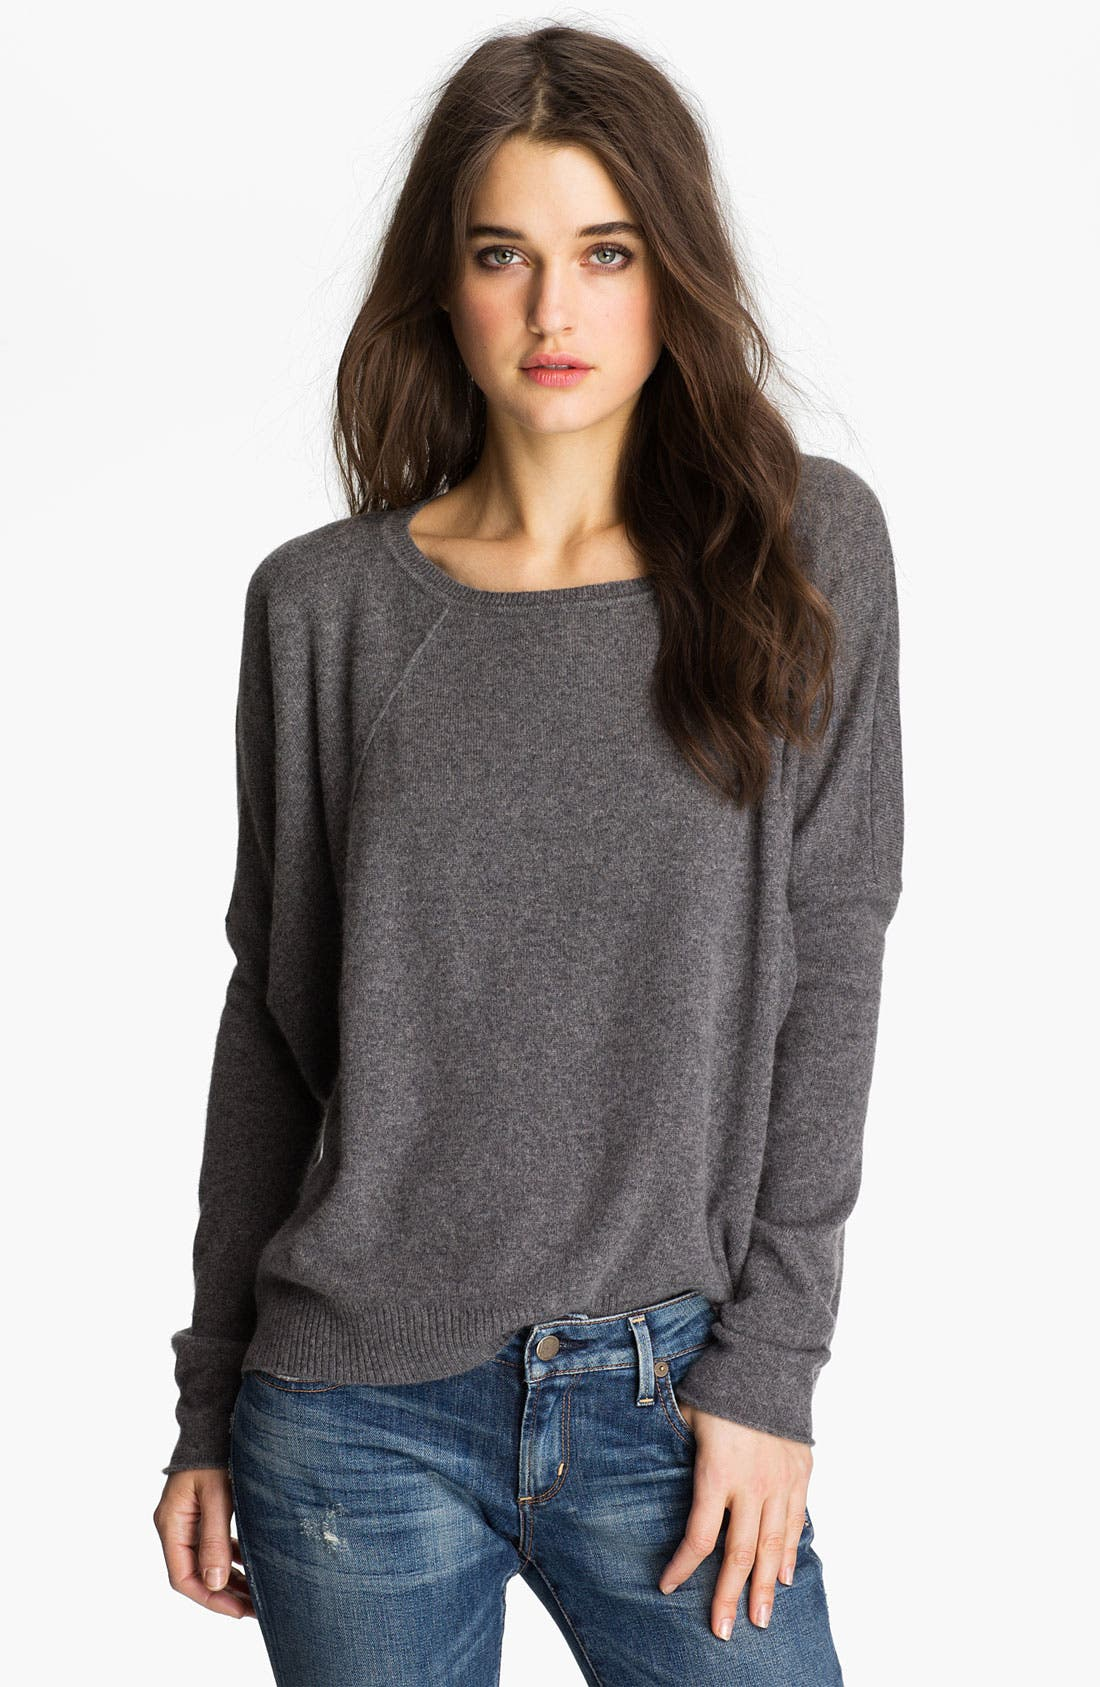 VELVET BY GRAHAM & SPENCER Slouchy Cashmere Sweater, Main, color, 050